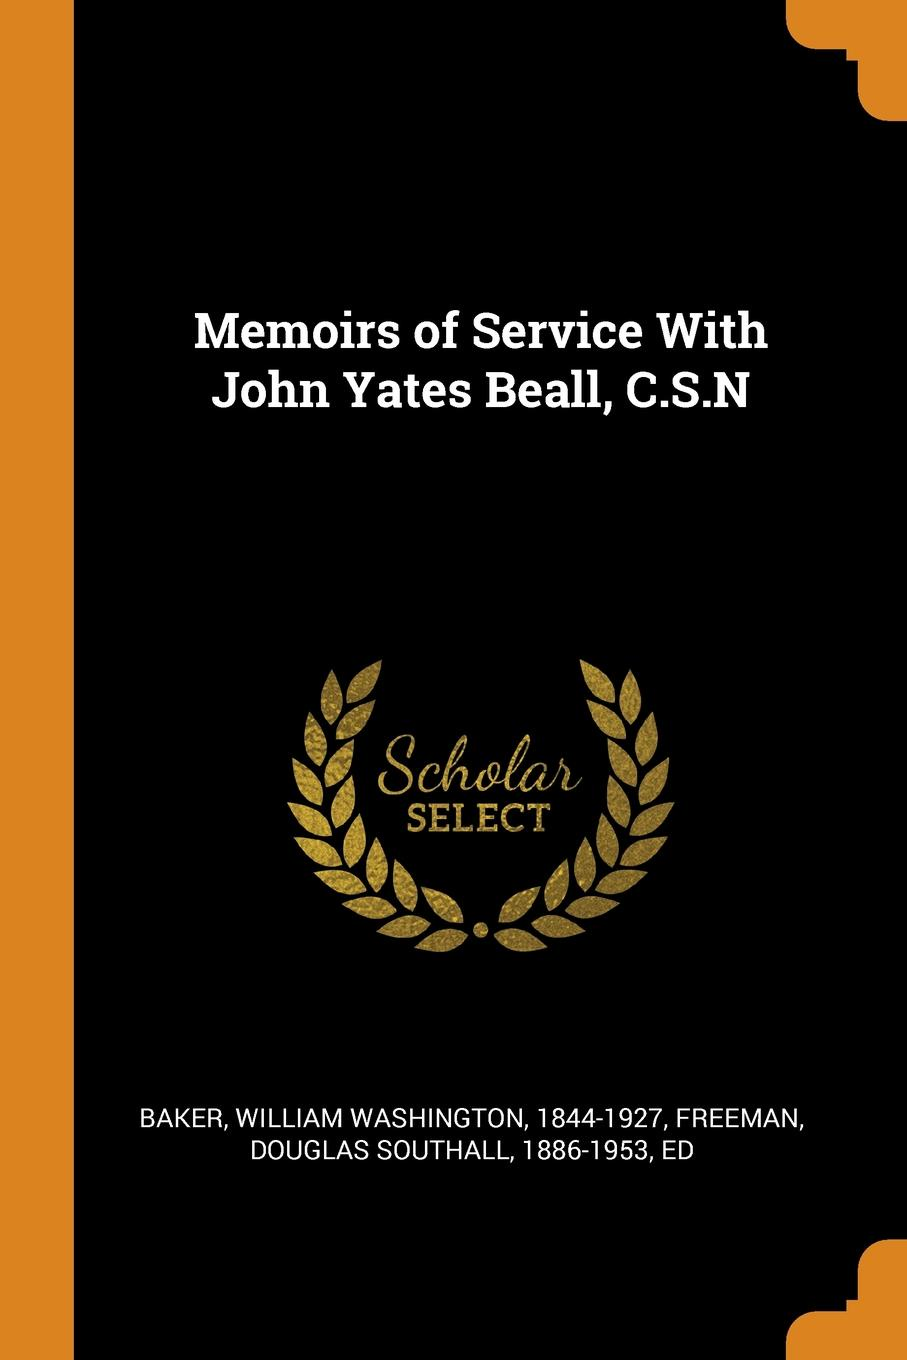 William Washington Baker, Douglas Southall Freeman Memoirs of Service With John Yates Beall, C.S.N